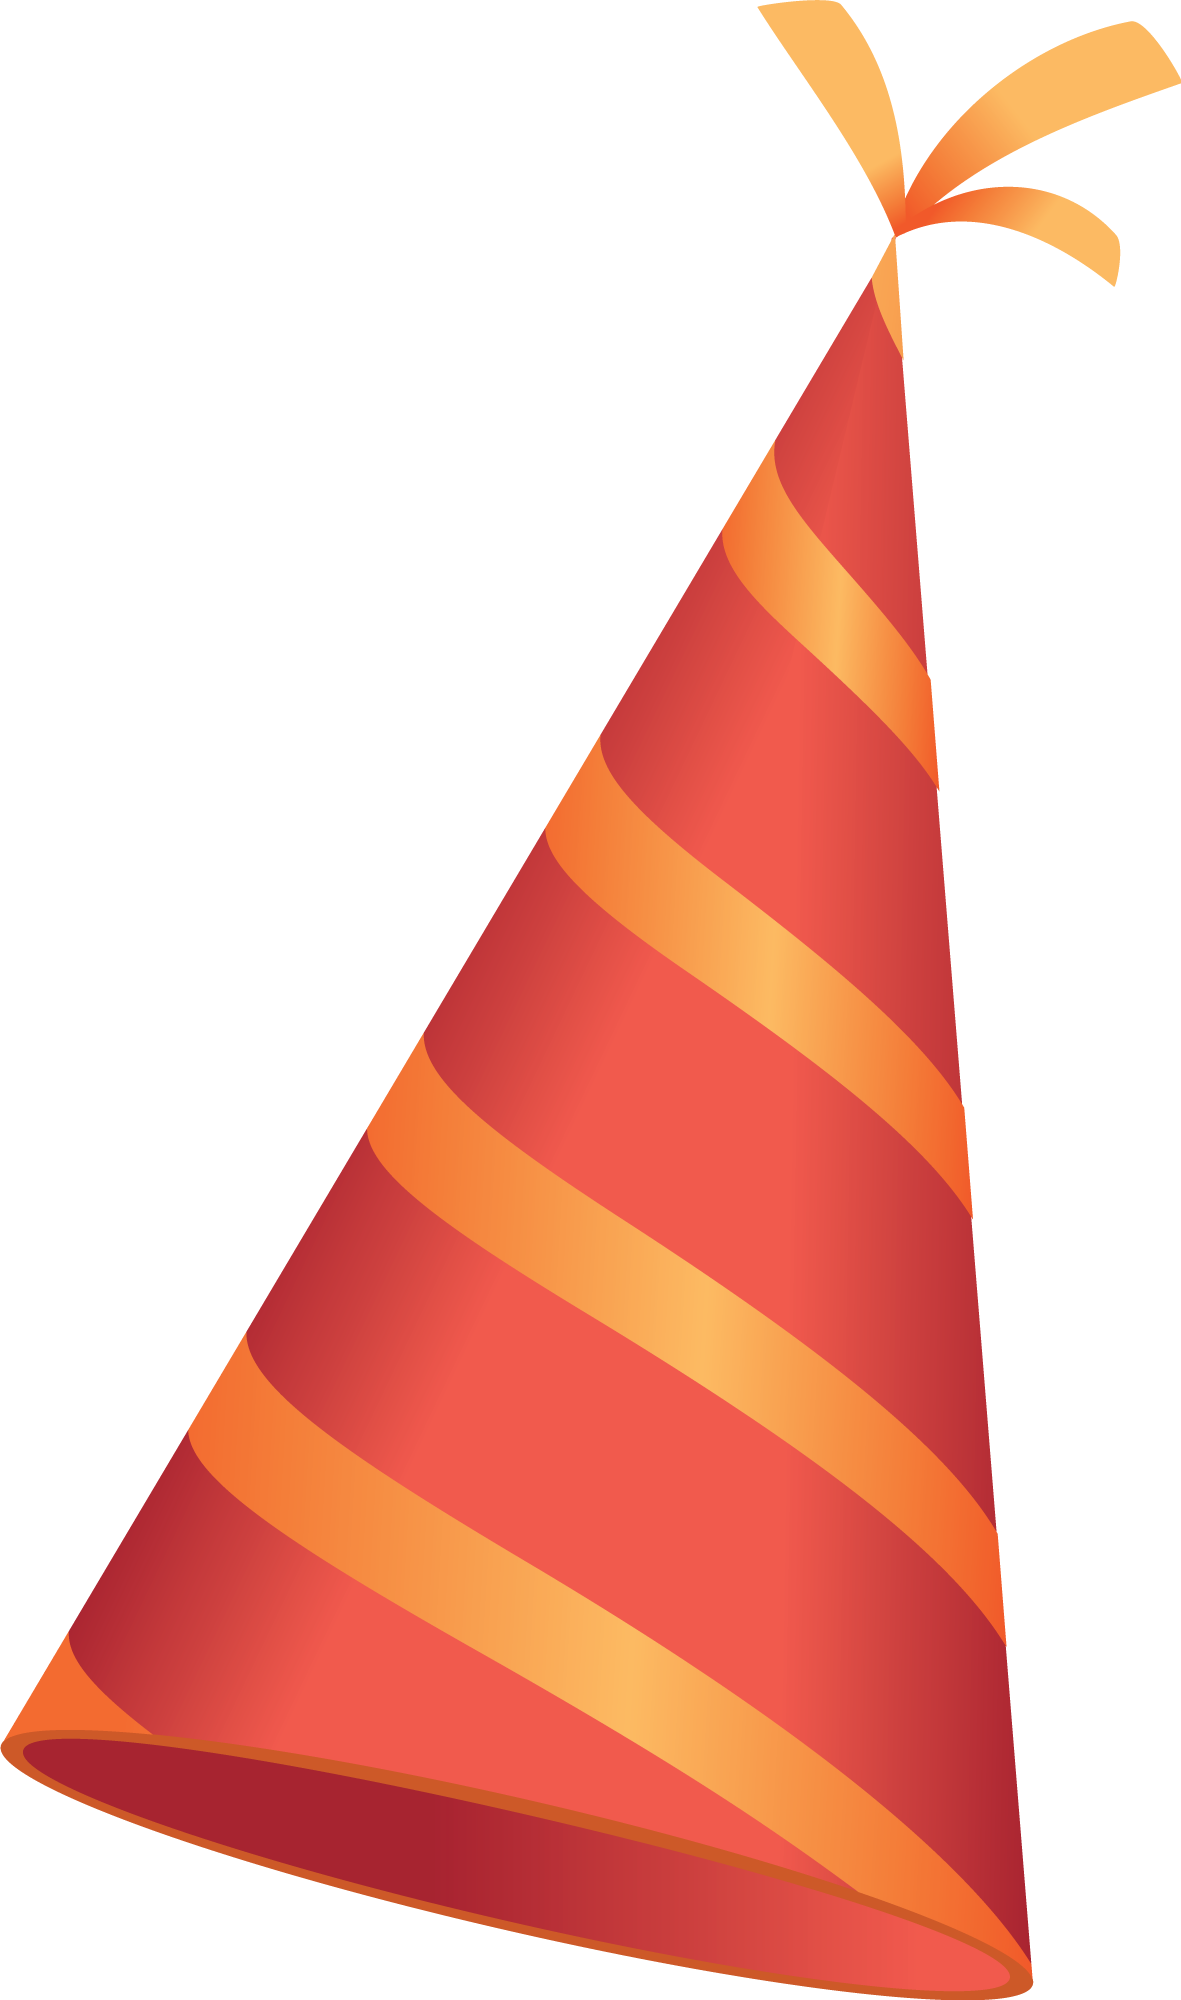 Transparent Birthday Hat Background